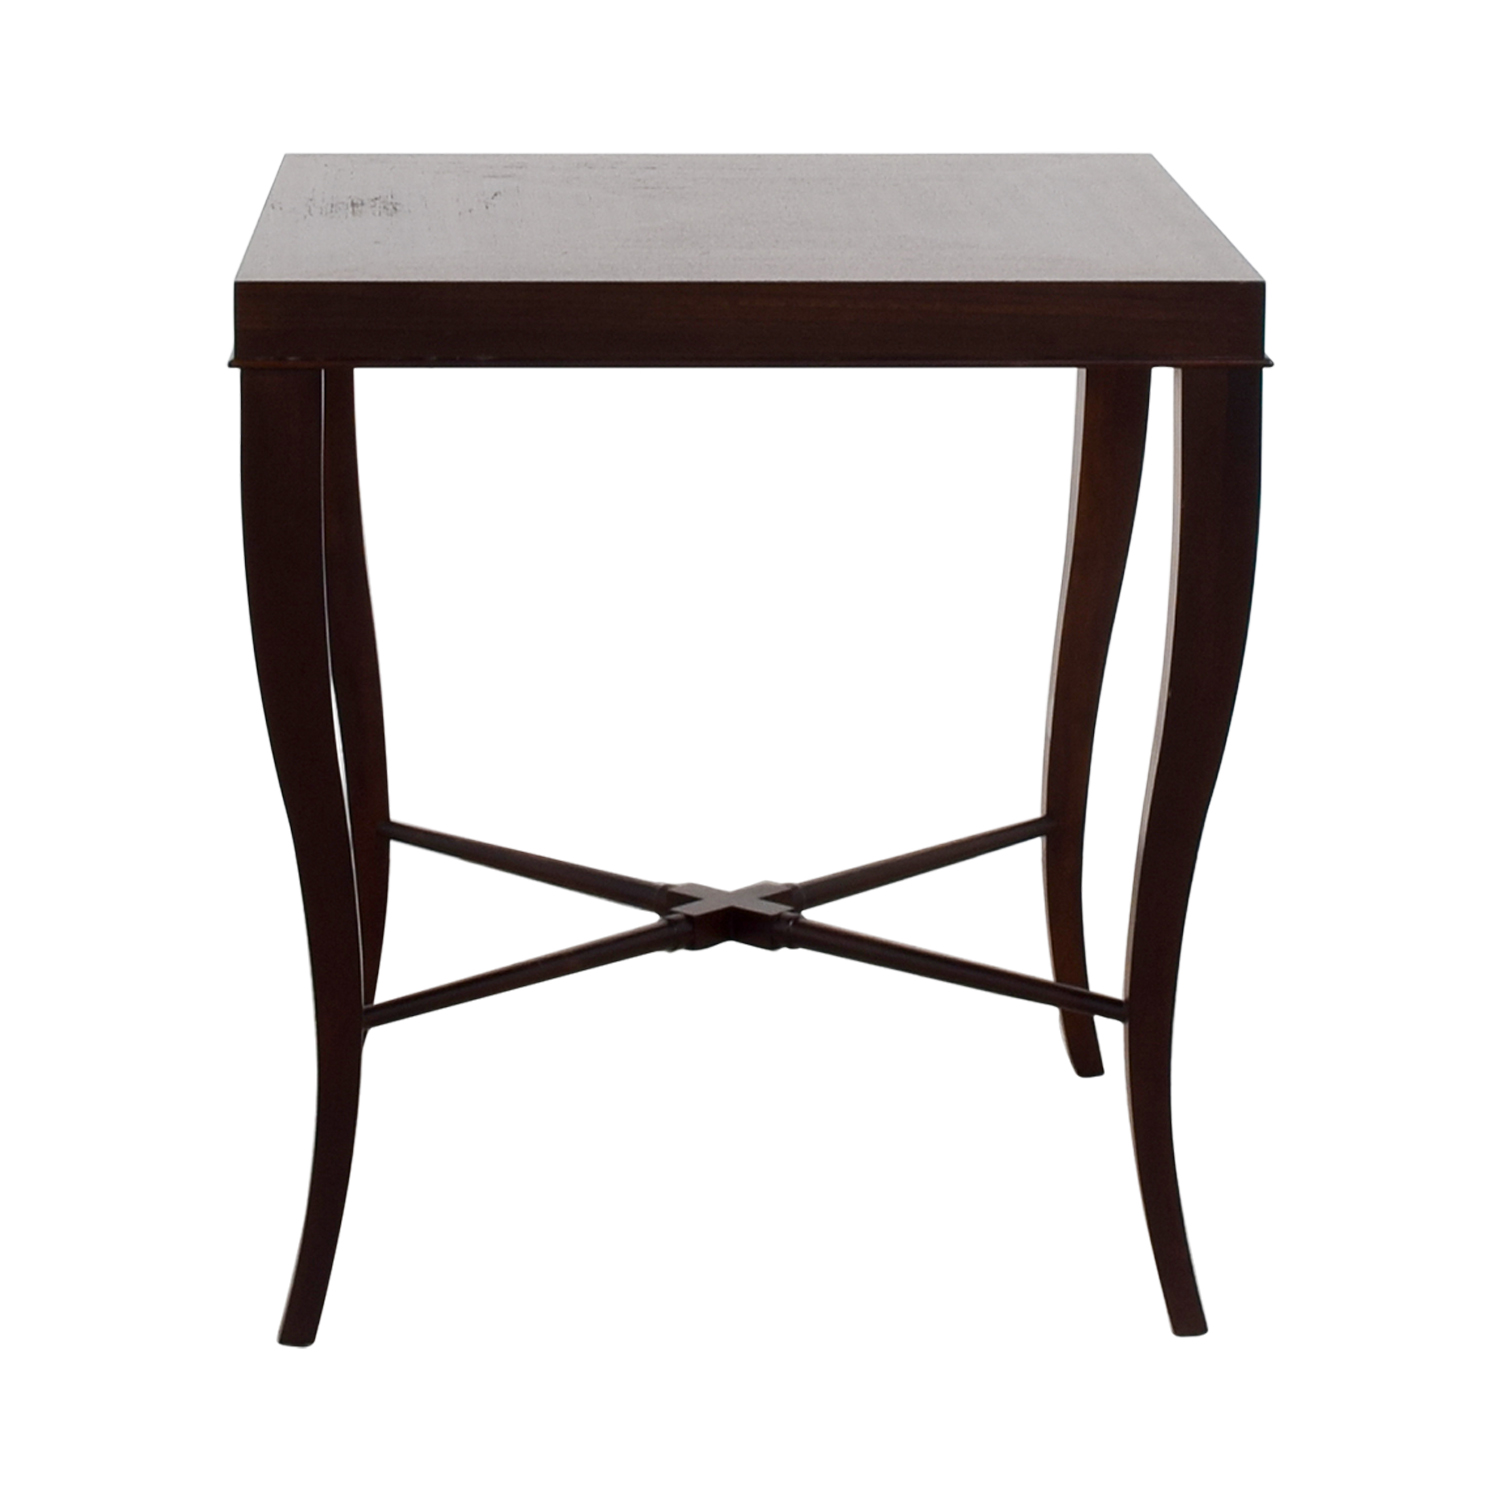 buy Ethan Allen Ethan Allen Wood Side Table online